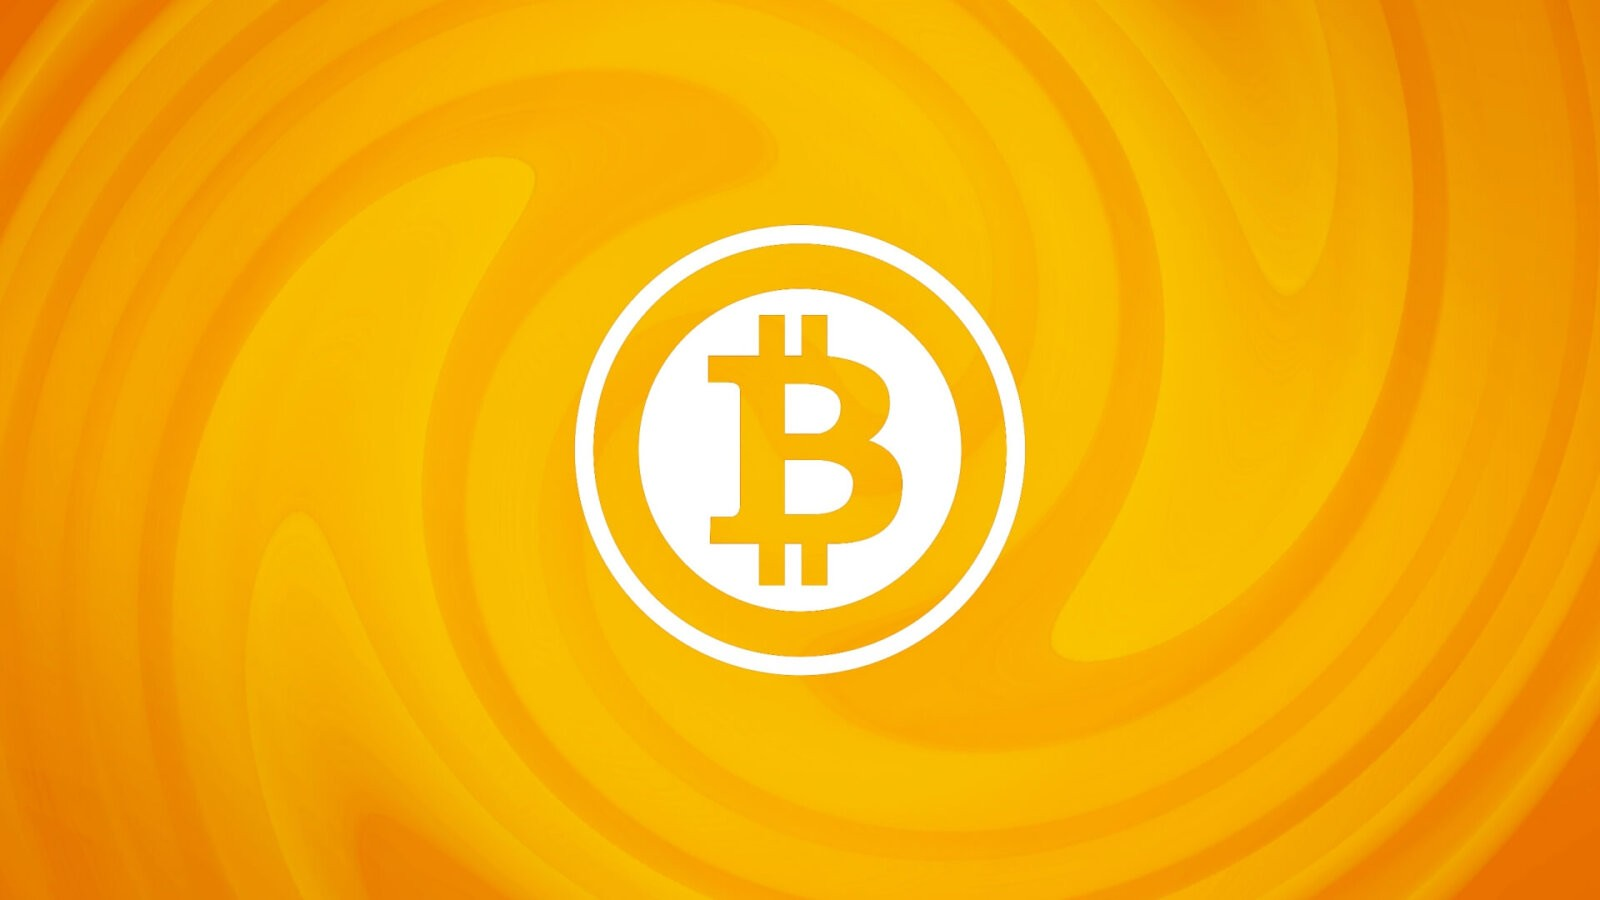 Bitcoin cloud org отзывы-2